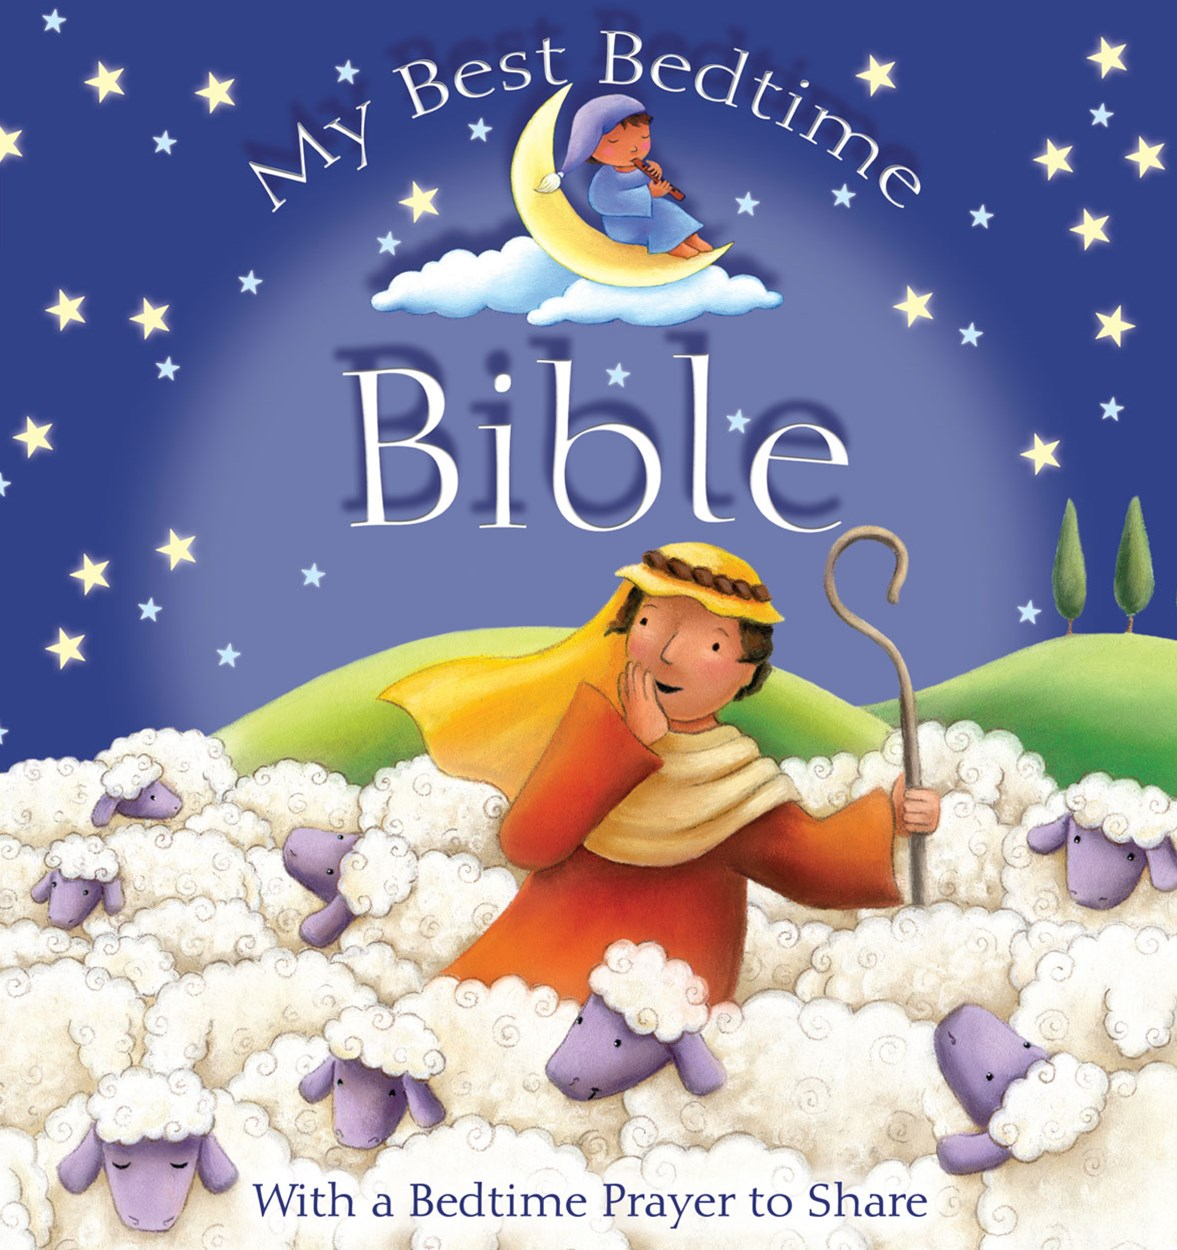 My Best Bedtime Bible